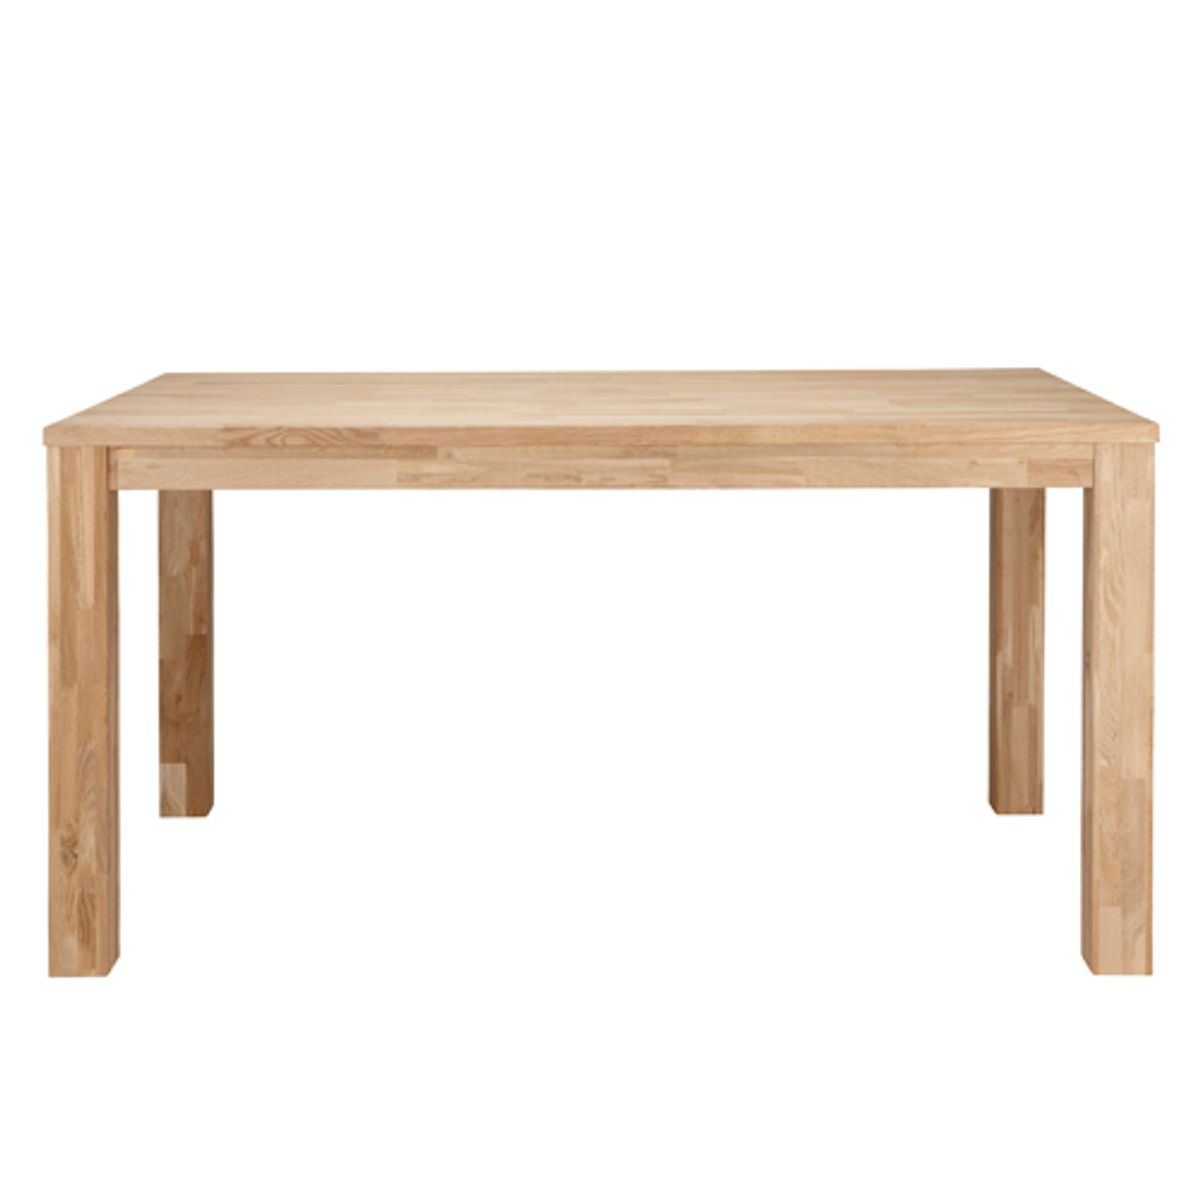 Table rectangulaire L 180 en chêne massif naturel largo -MM